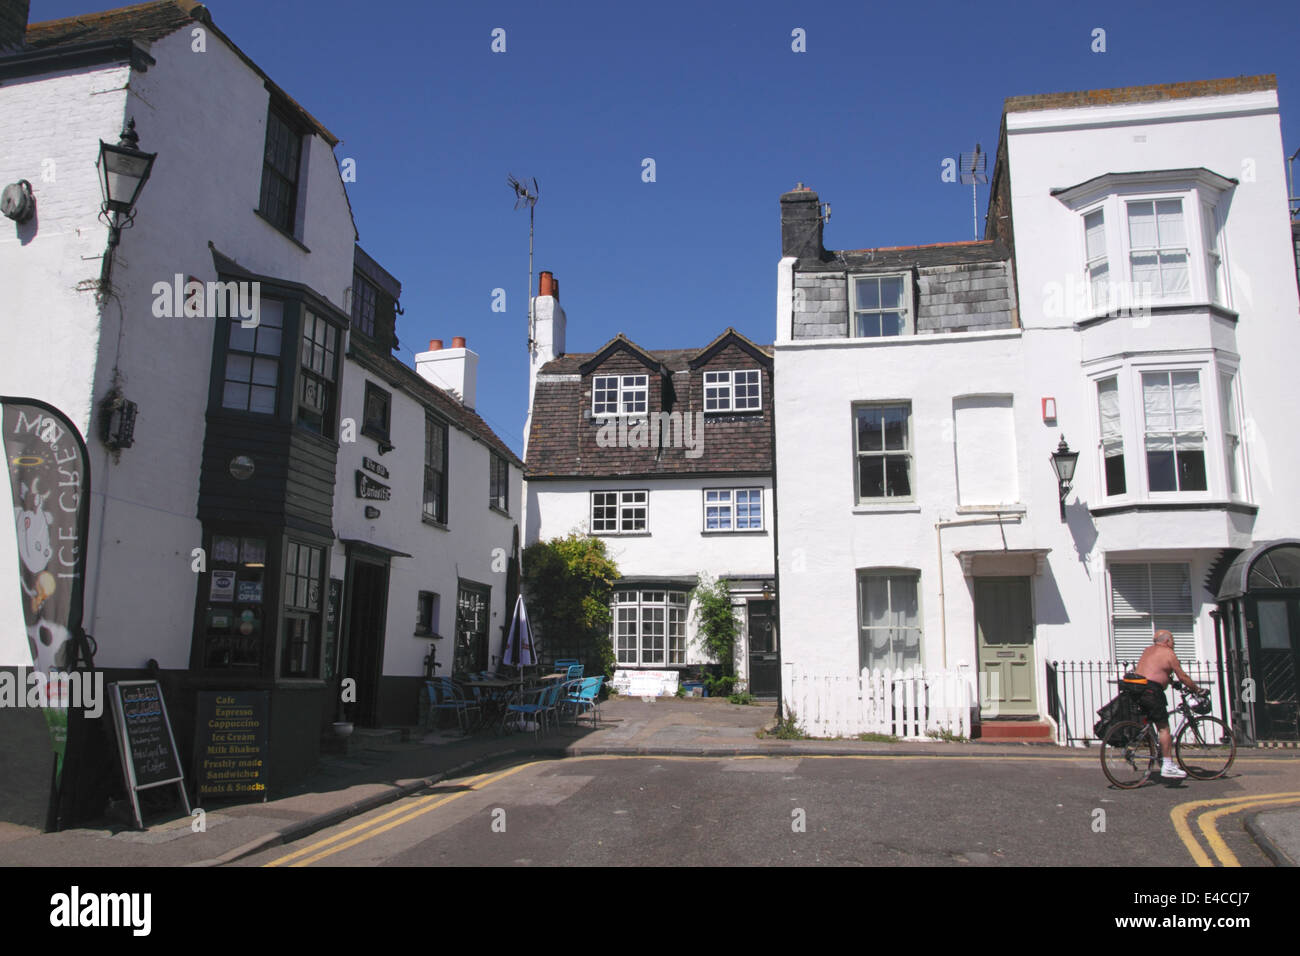 The Old Curiosity Shop Harbour Street Broadstairs Kent - Stock Image